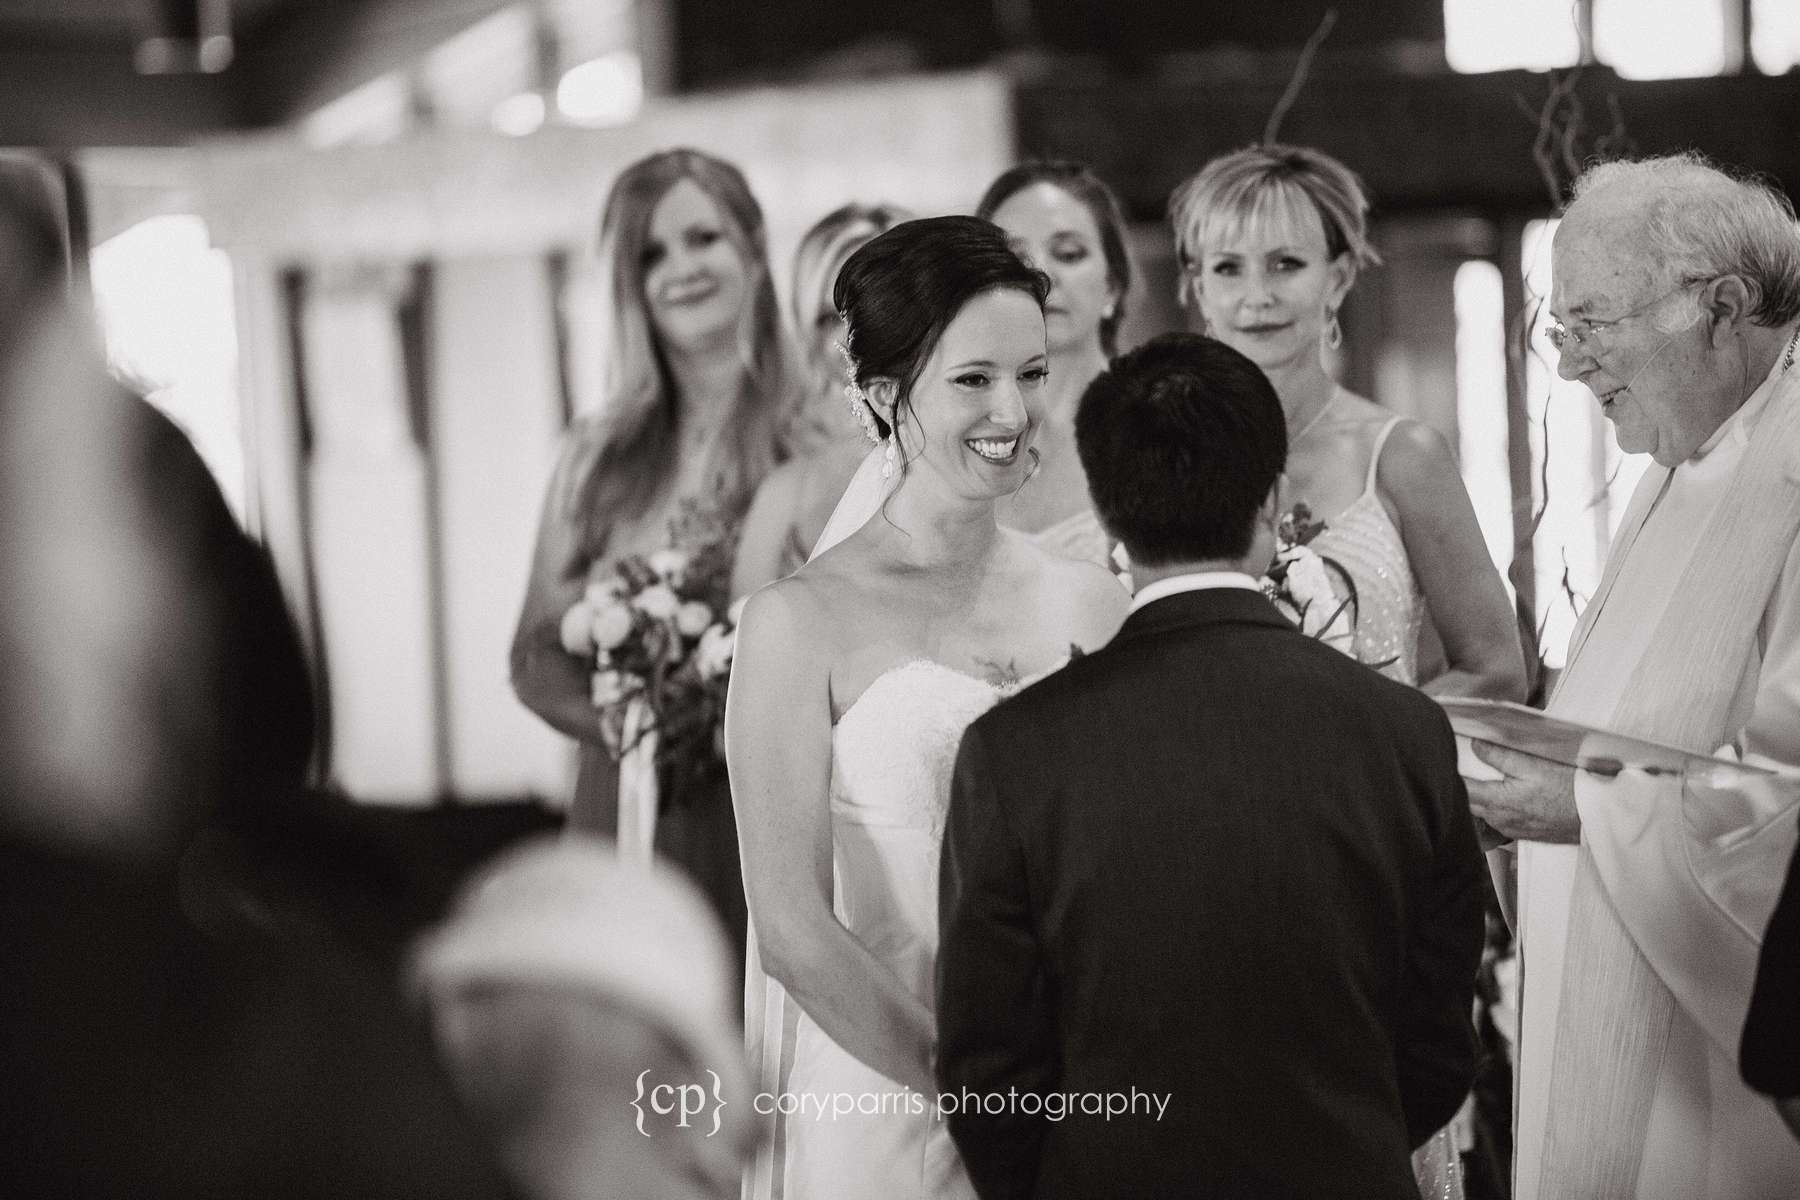 Angie looking at Vinh during the wedding ceremony.